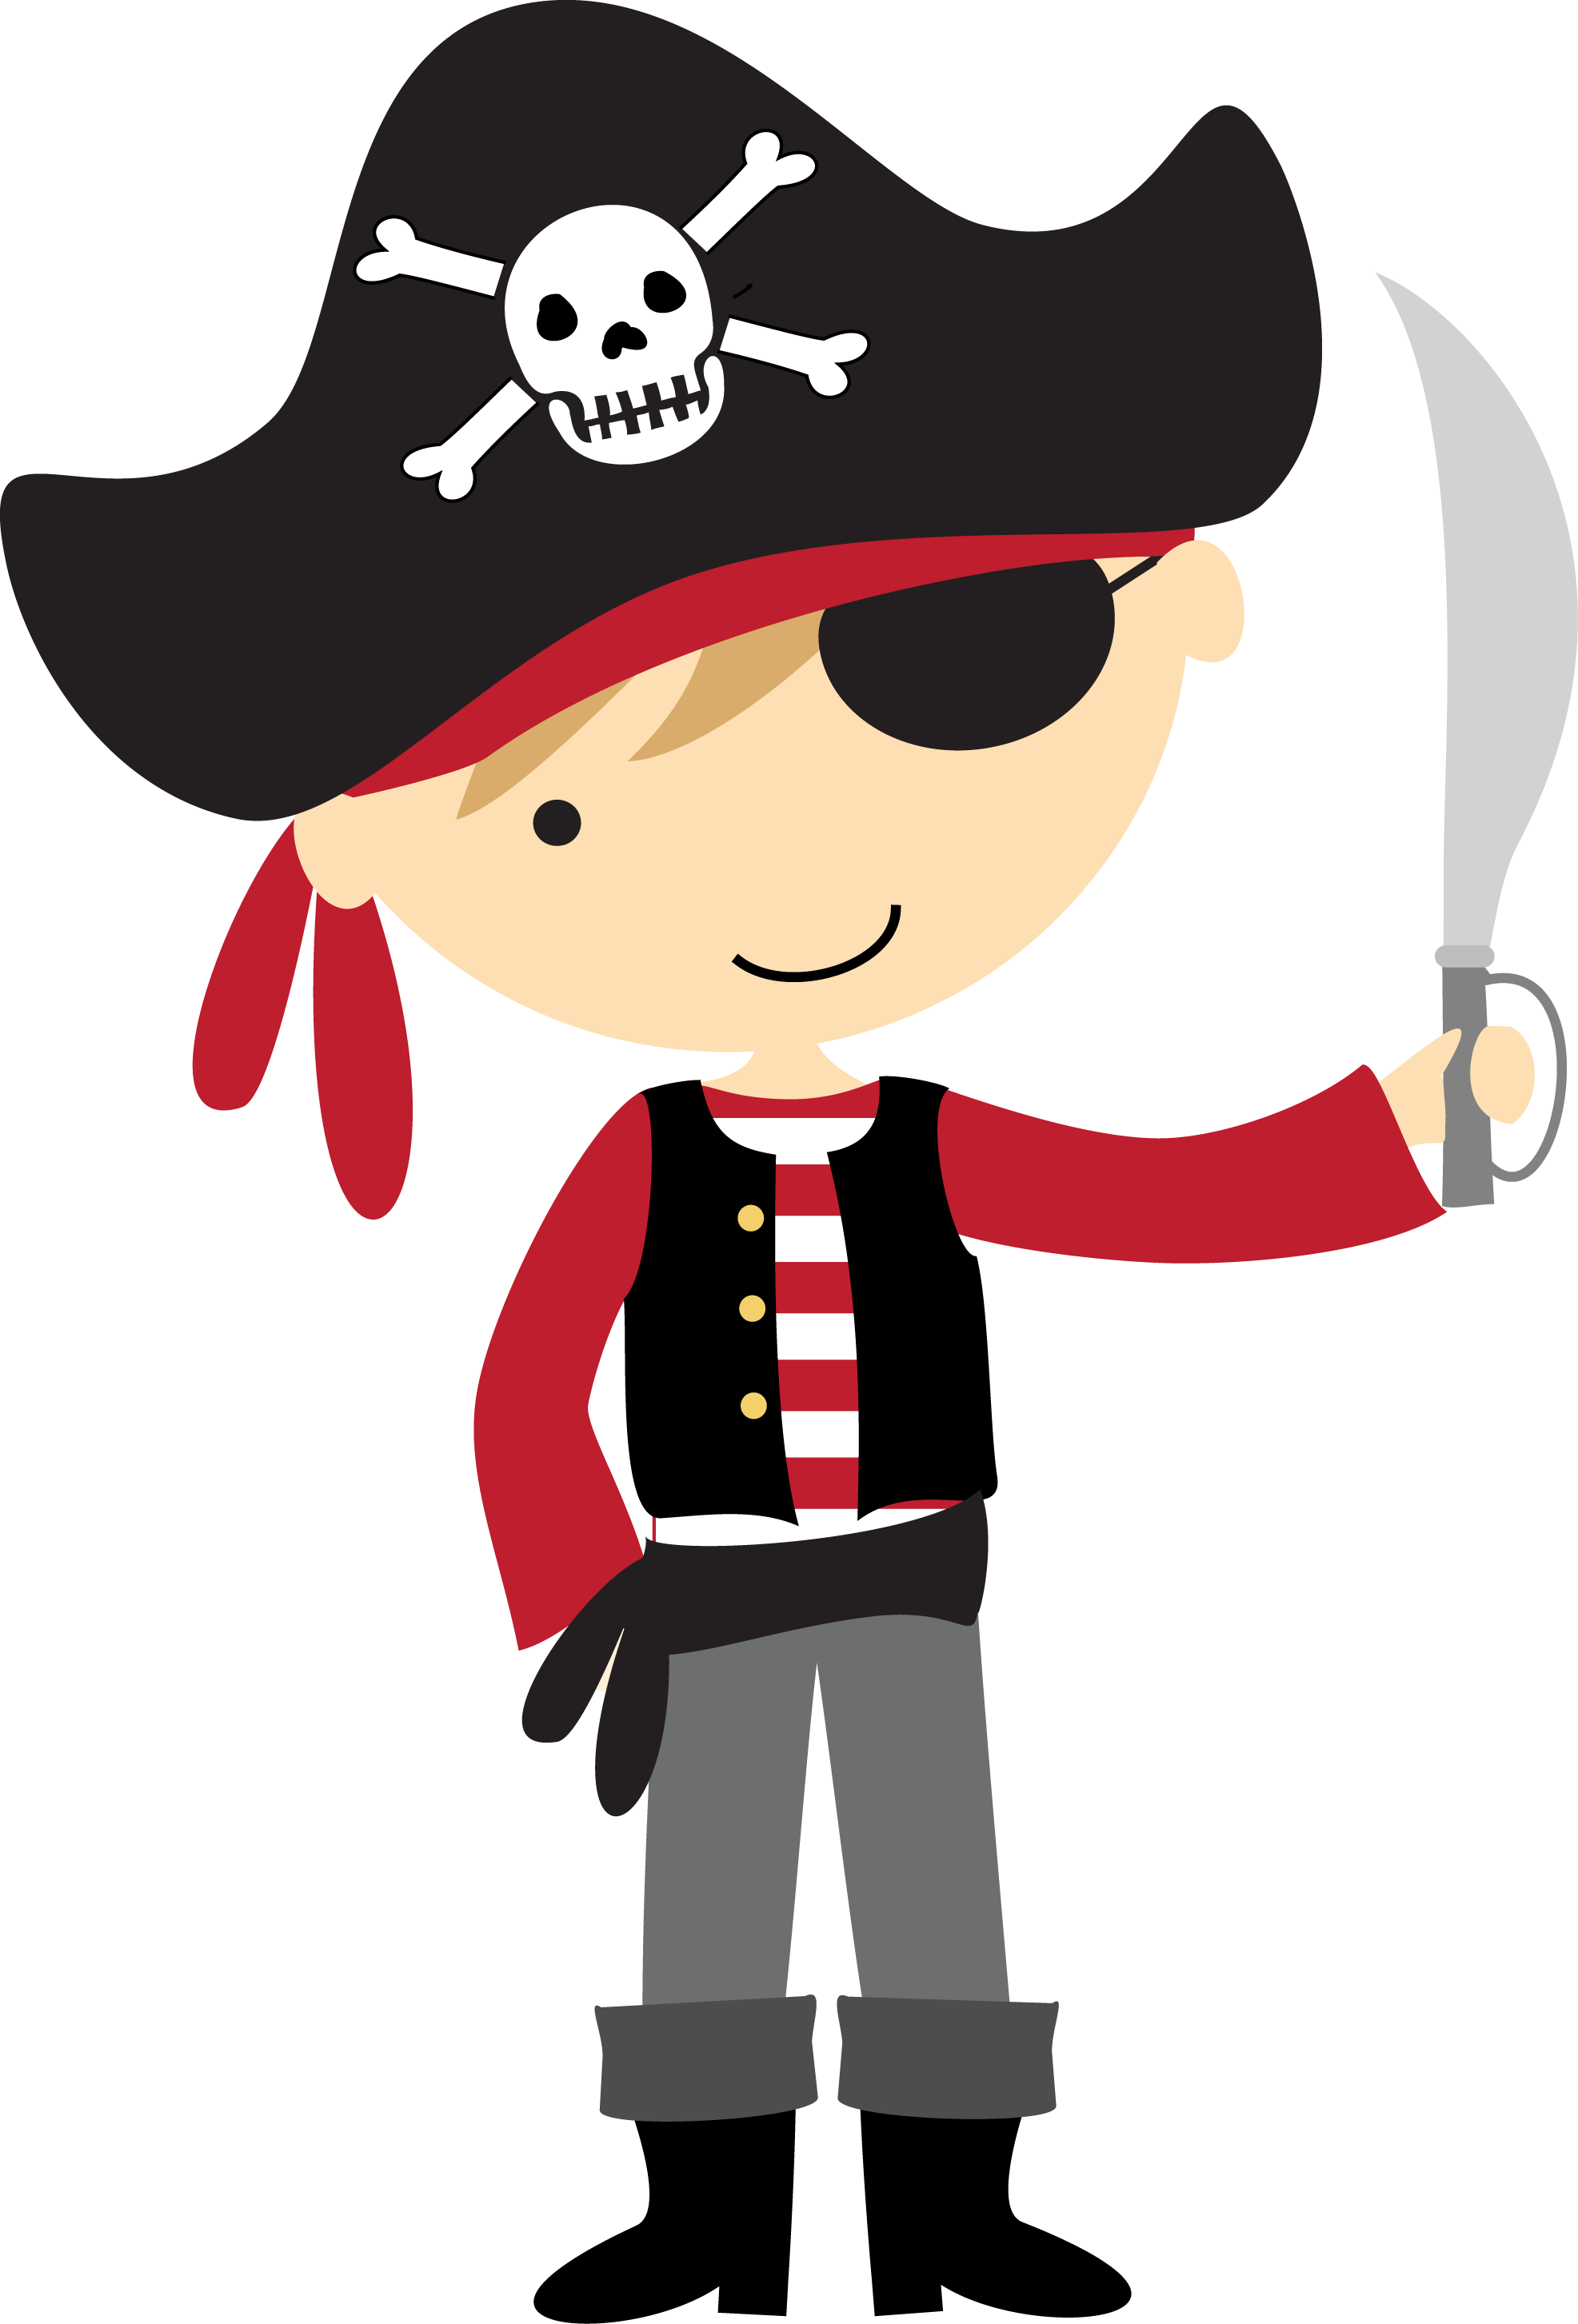 Pin by mur murg. Cute halloween pirate clipart